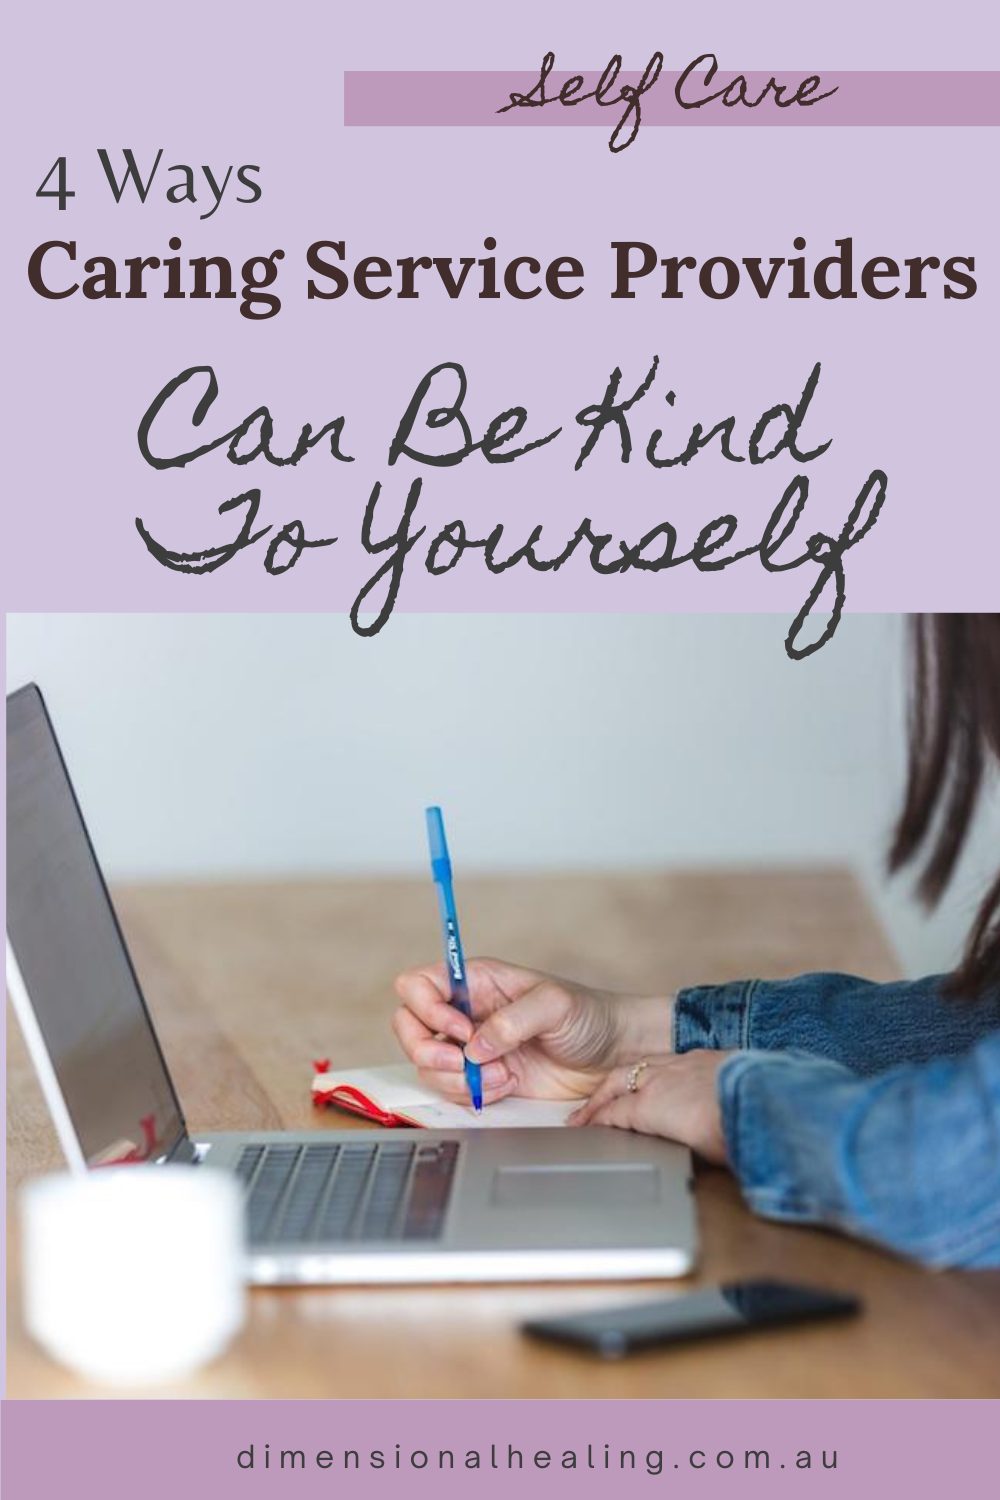 Putting self love into practice is self care for caring service providers who focus on providing the best service they can for their clients